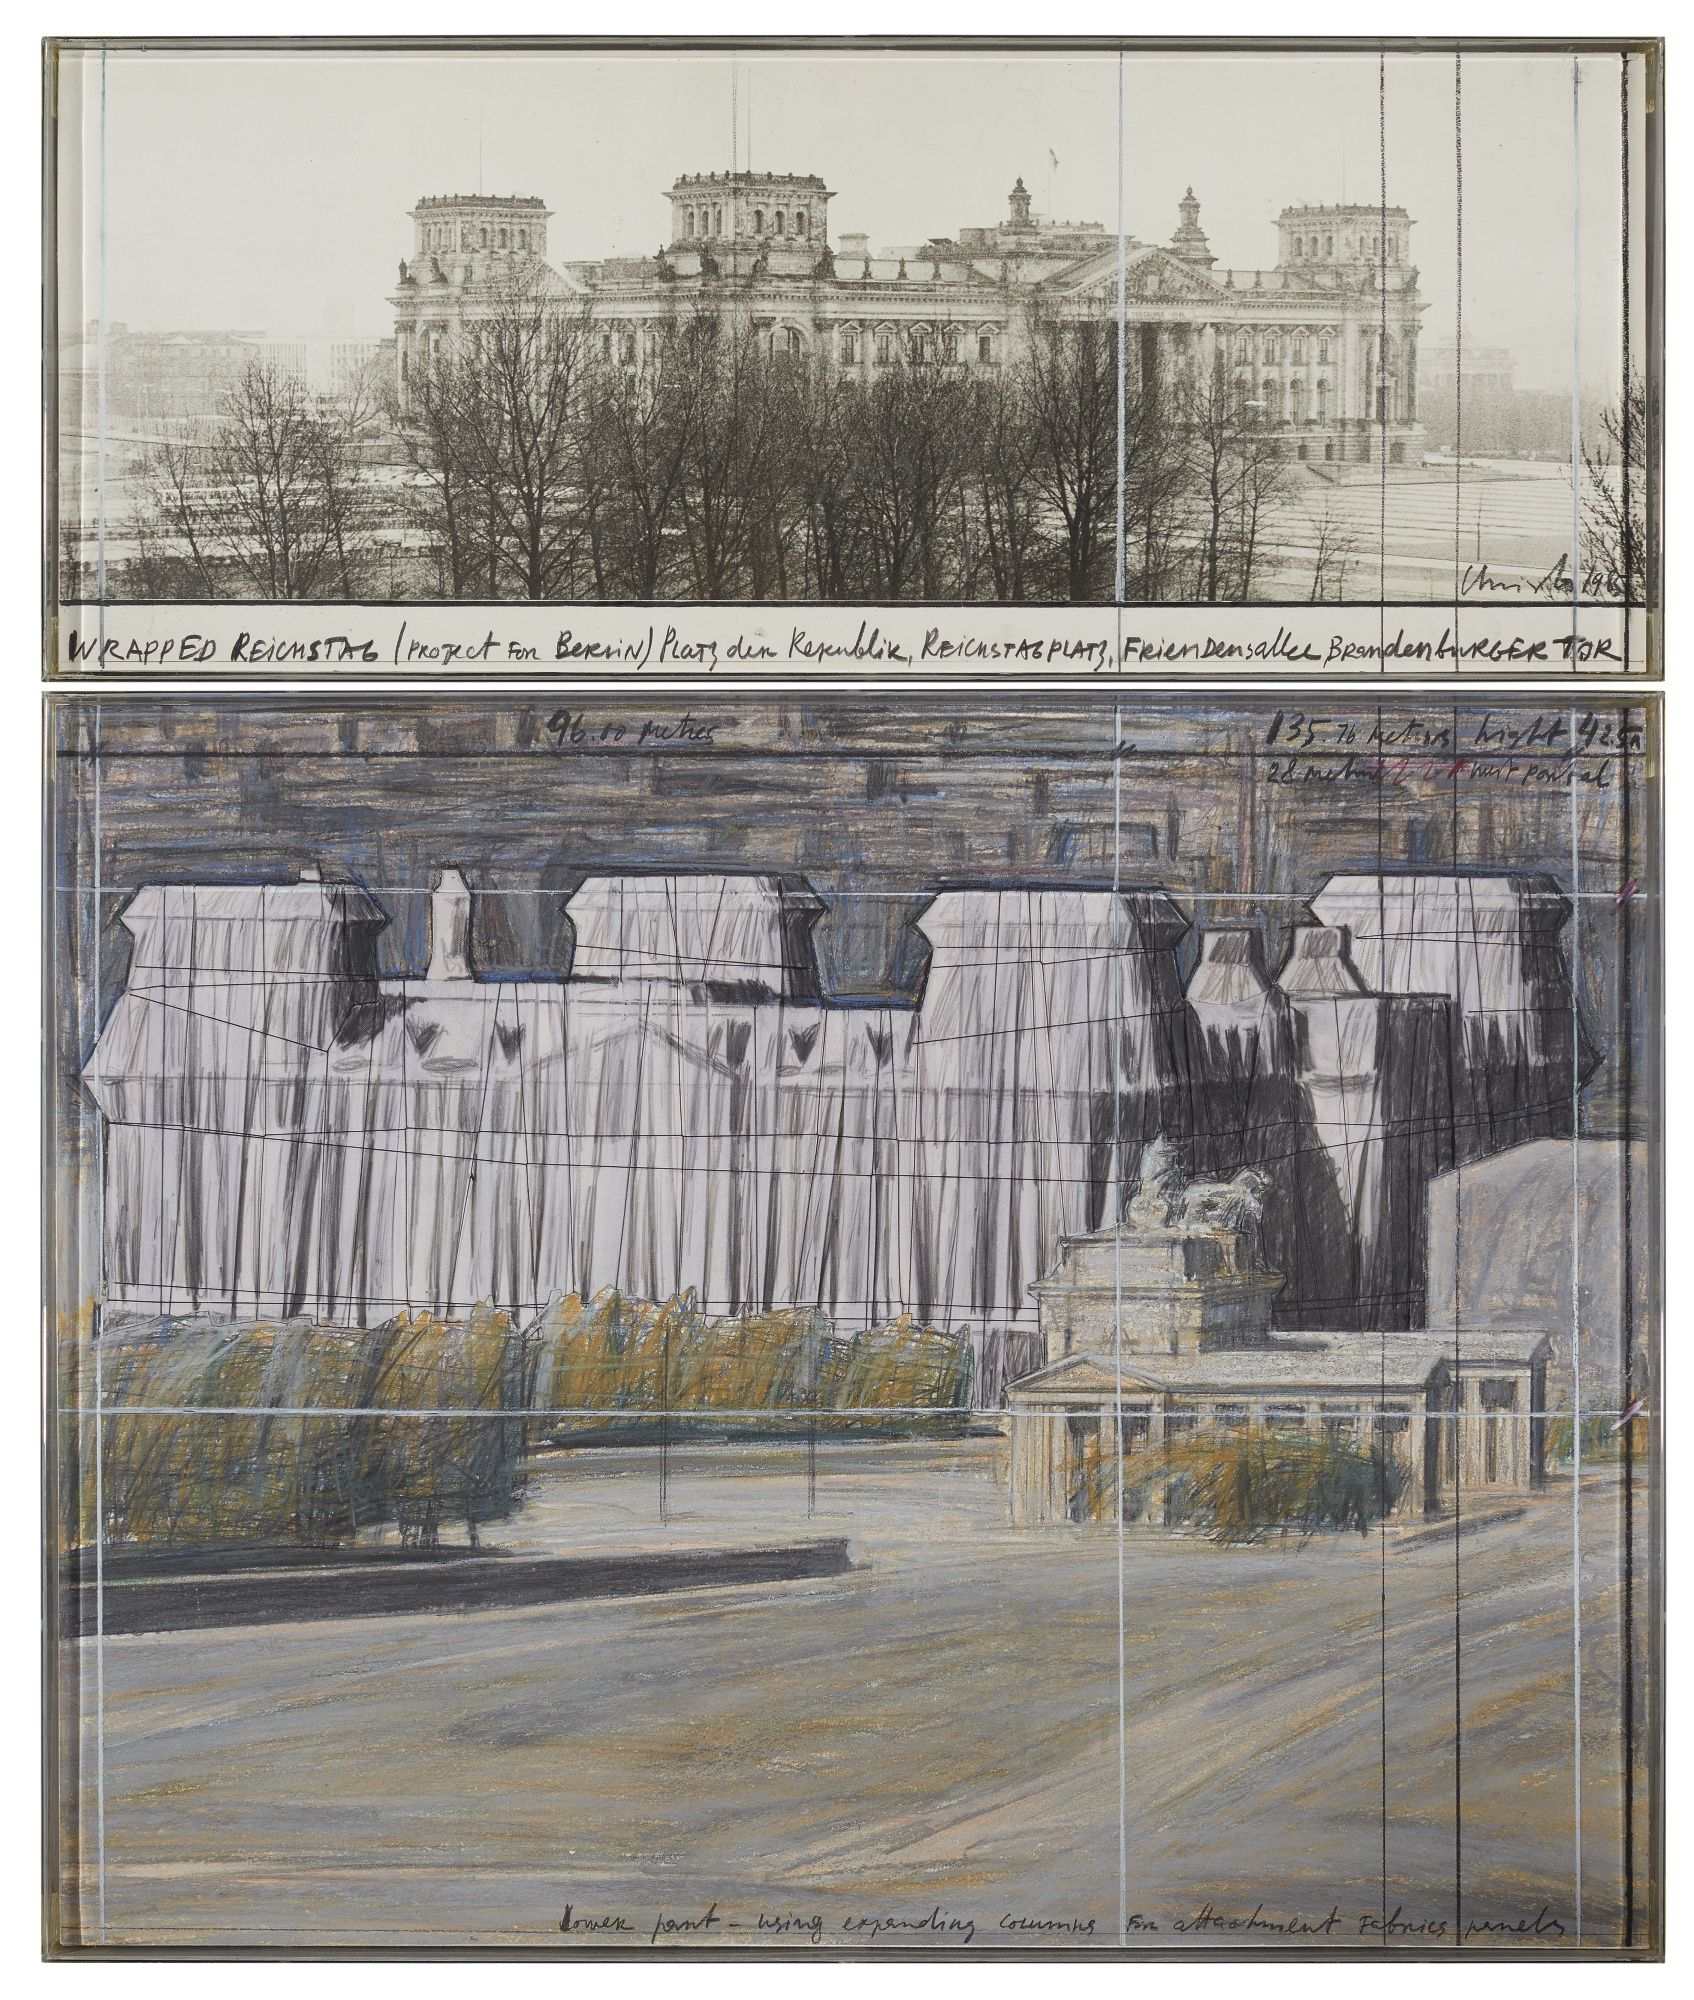 Christo And Jeanne Claude Wrap Landscape Sotheby S N10027lot9v9rcen Christo And Jeanne Claude Landscape Latin American Art